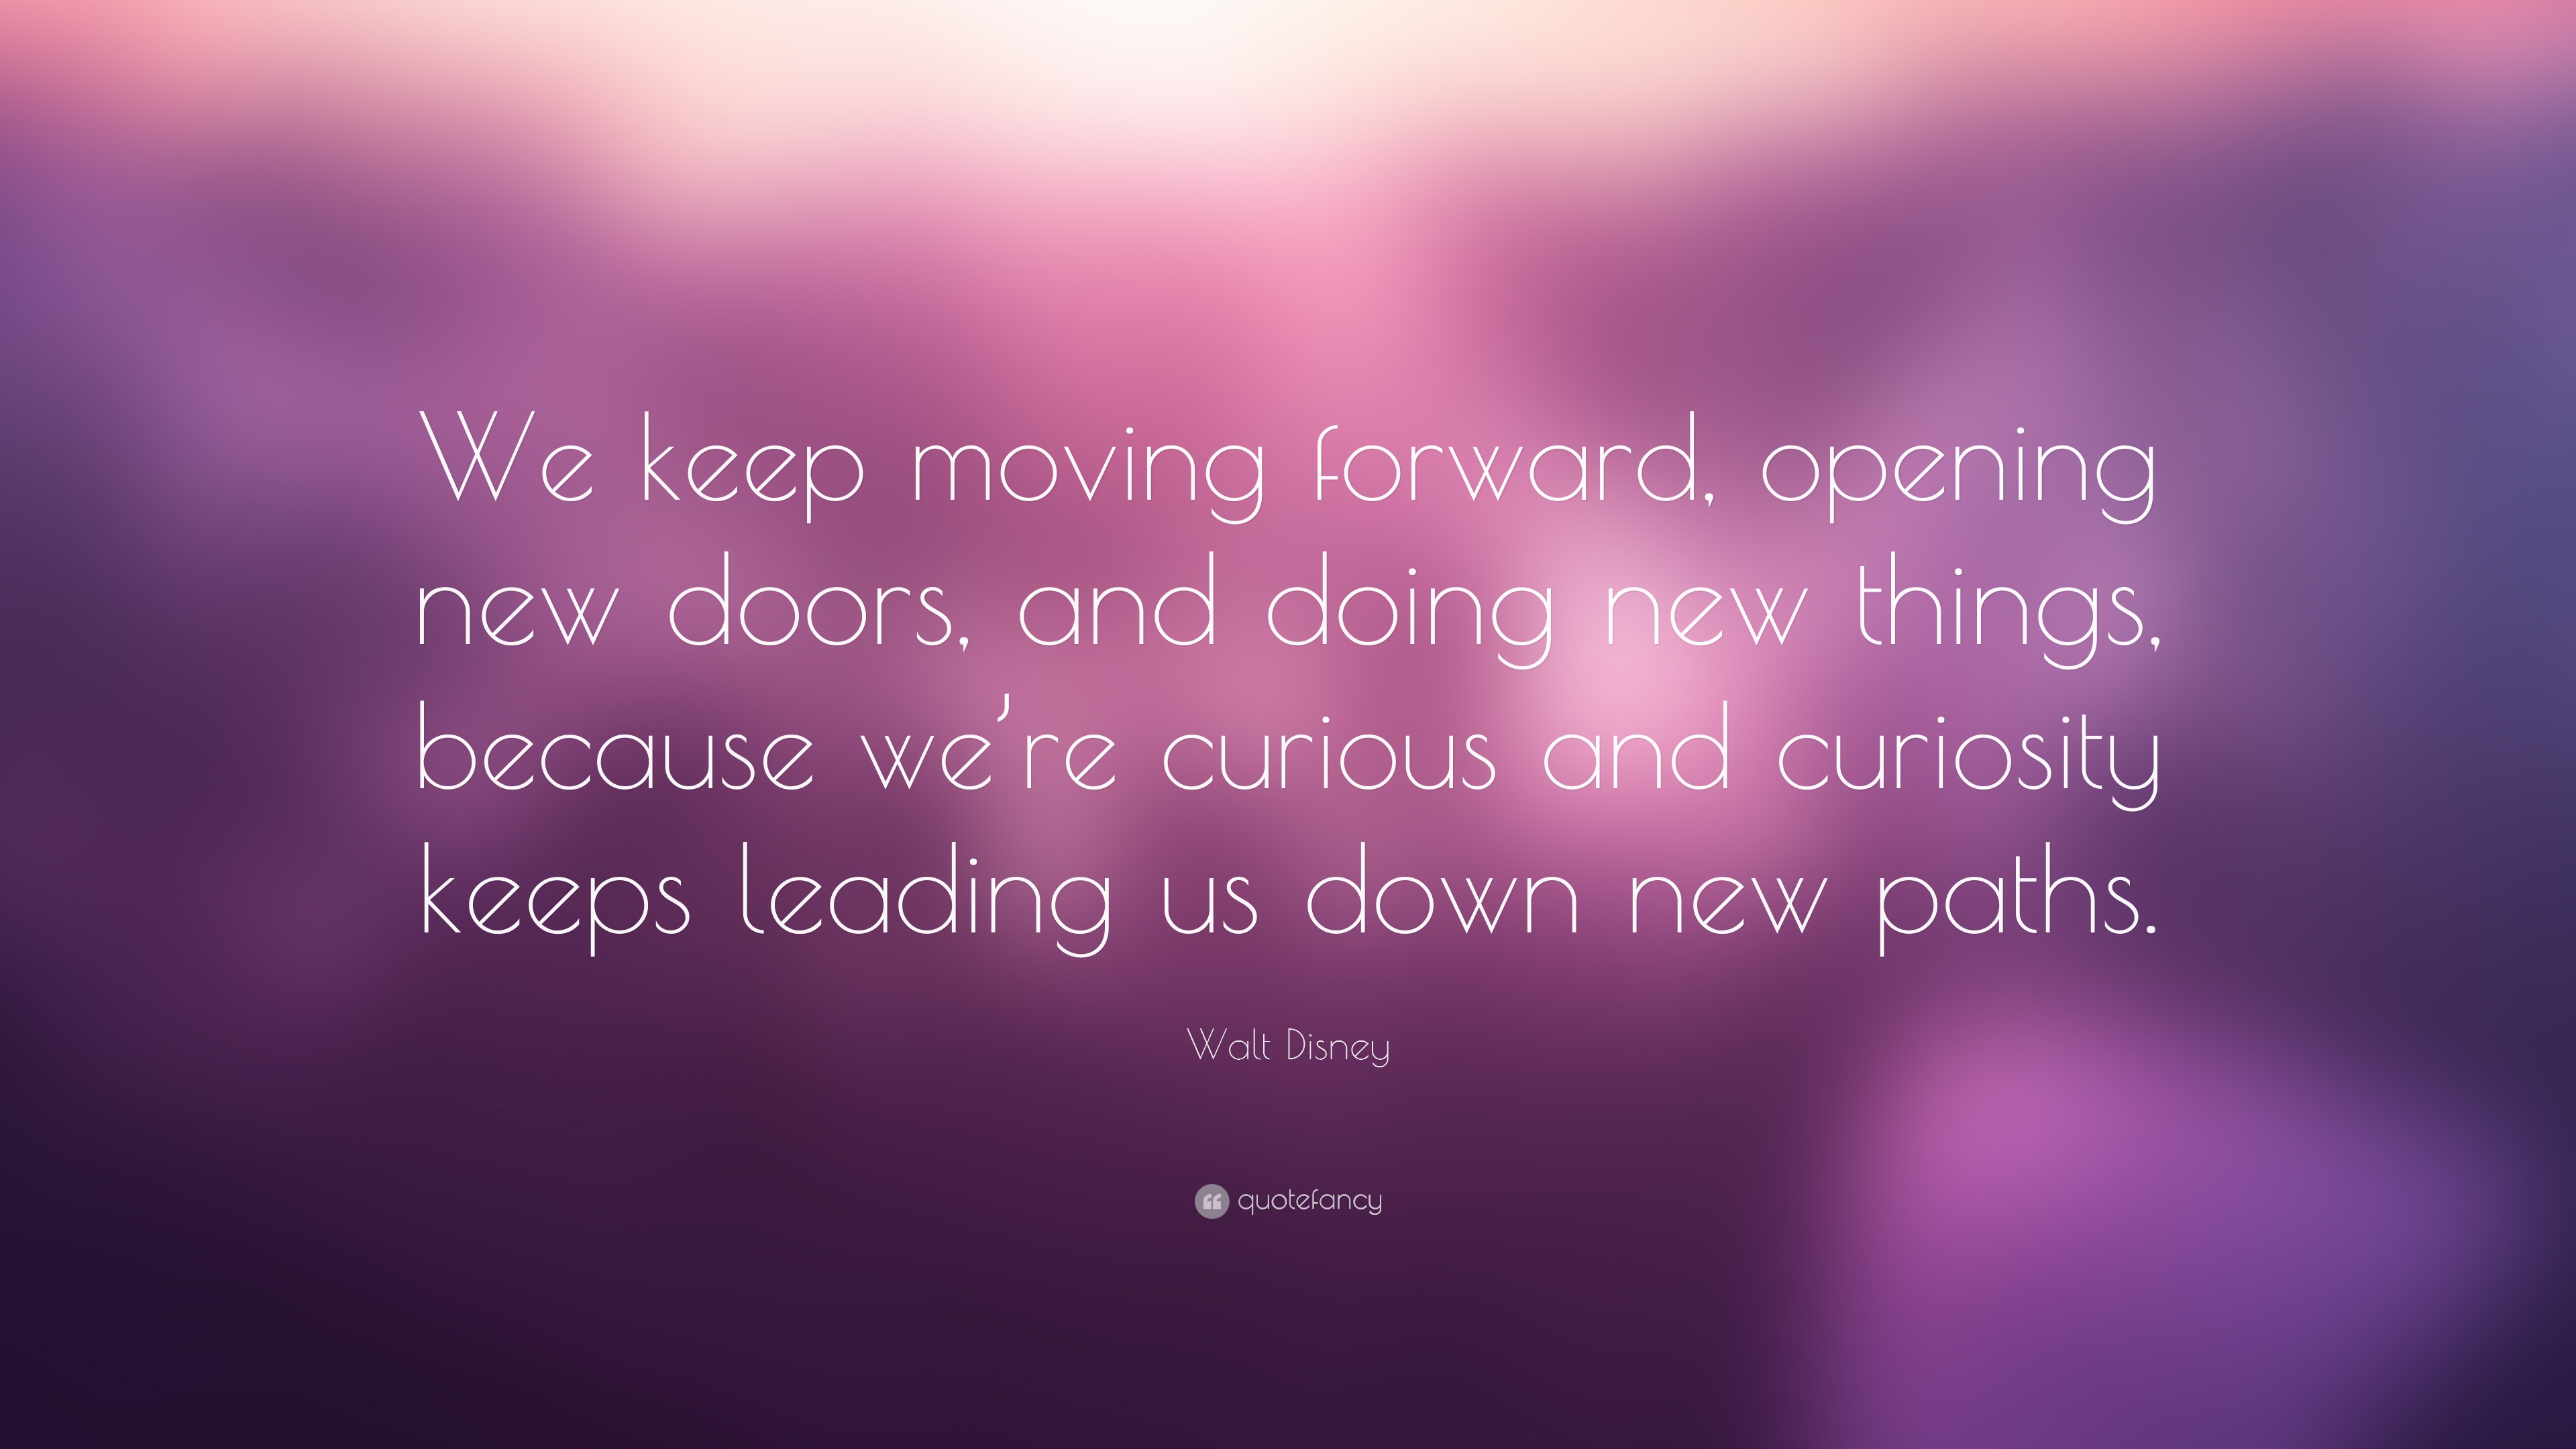 walt disney quotes keep moving forward - photo #24